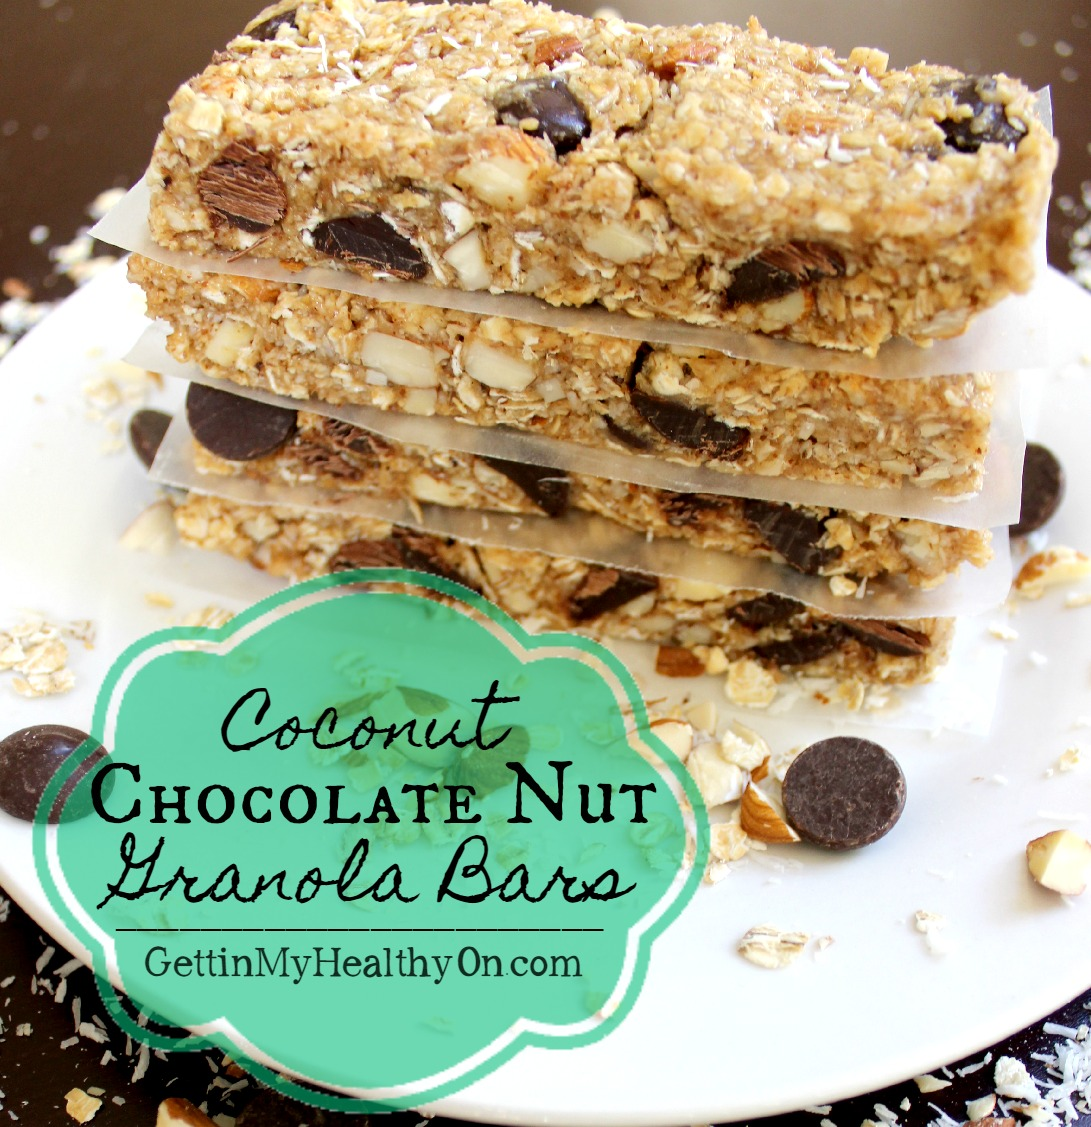 Coconut Chocolate Nut Granola Bars